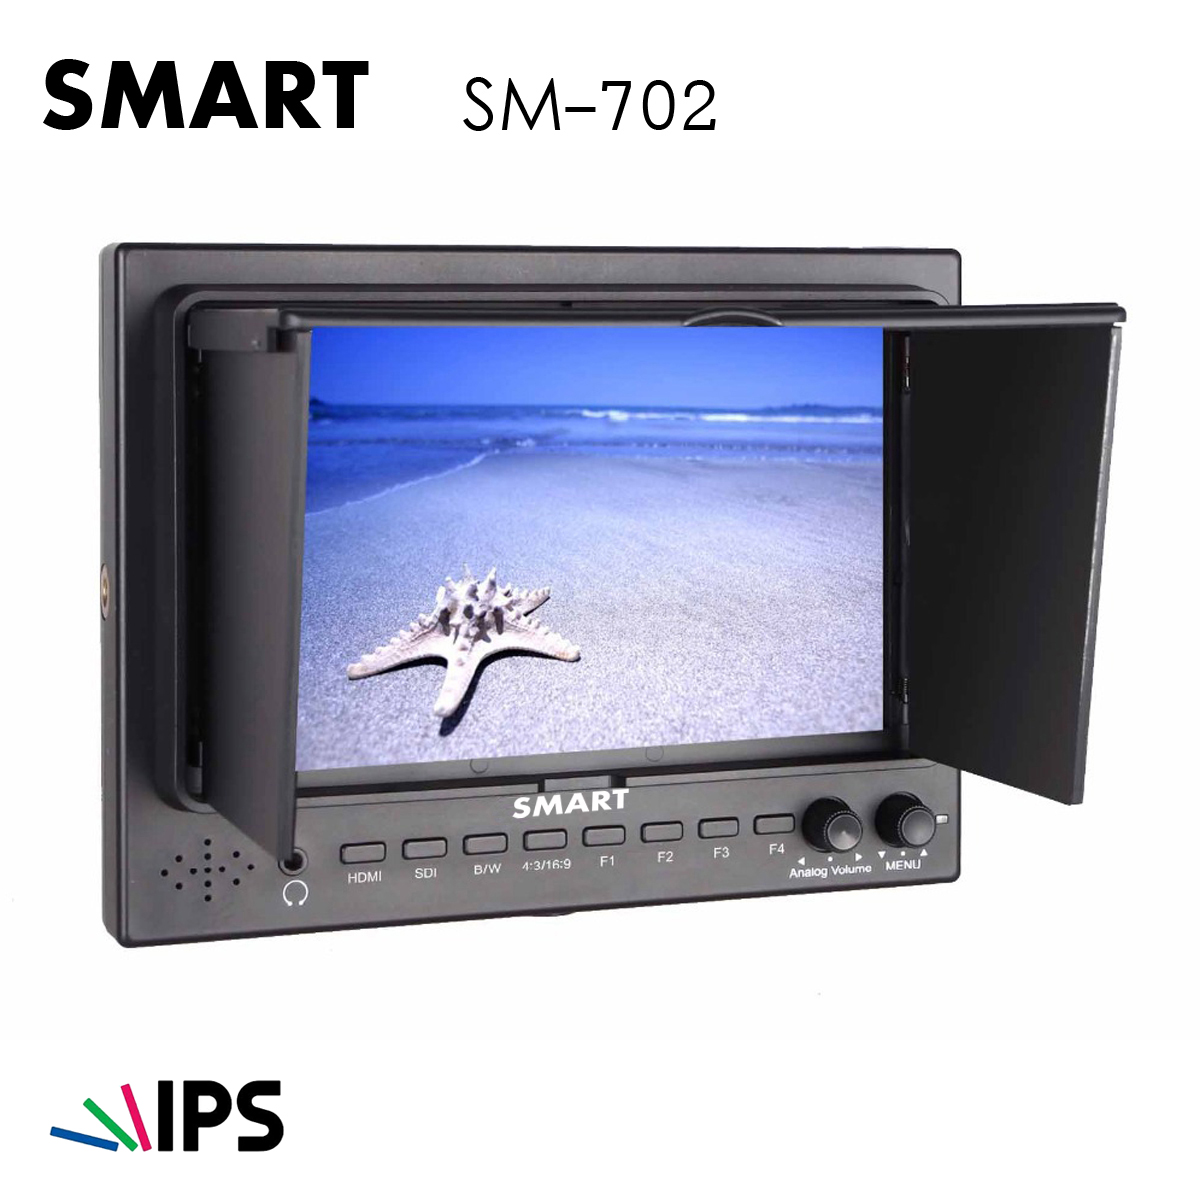 "SMART SM702 HDMI/SDI 7"" IPS Monitor"